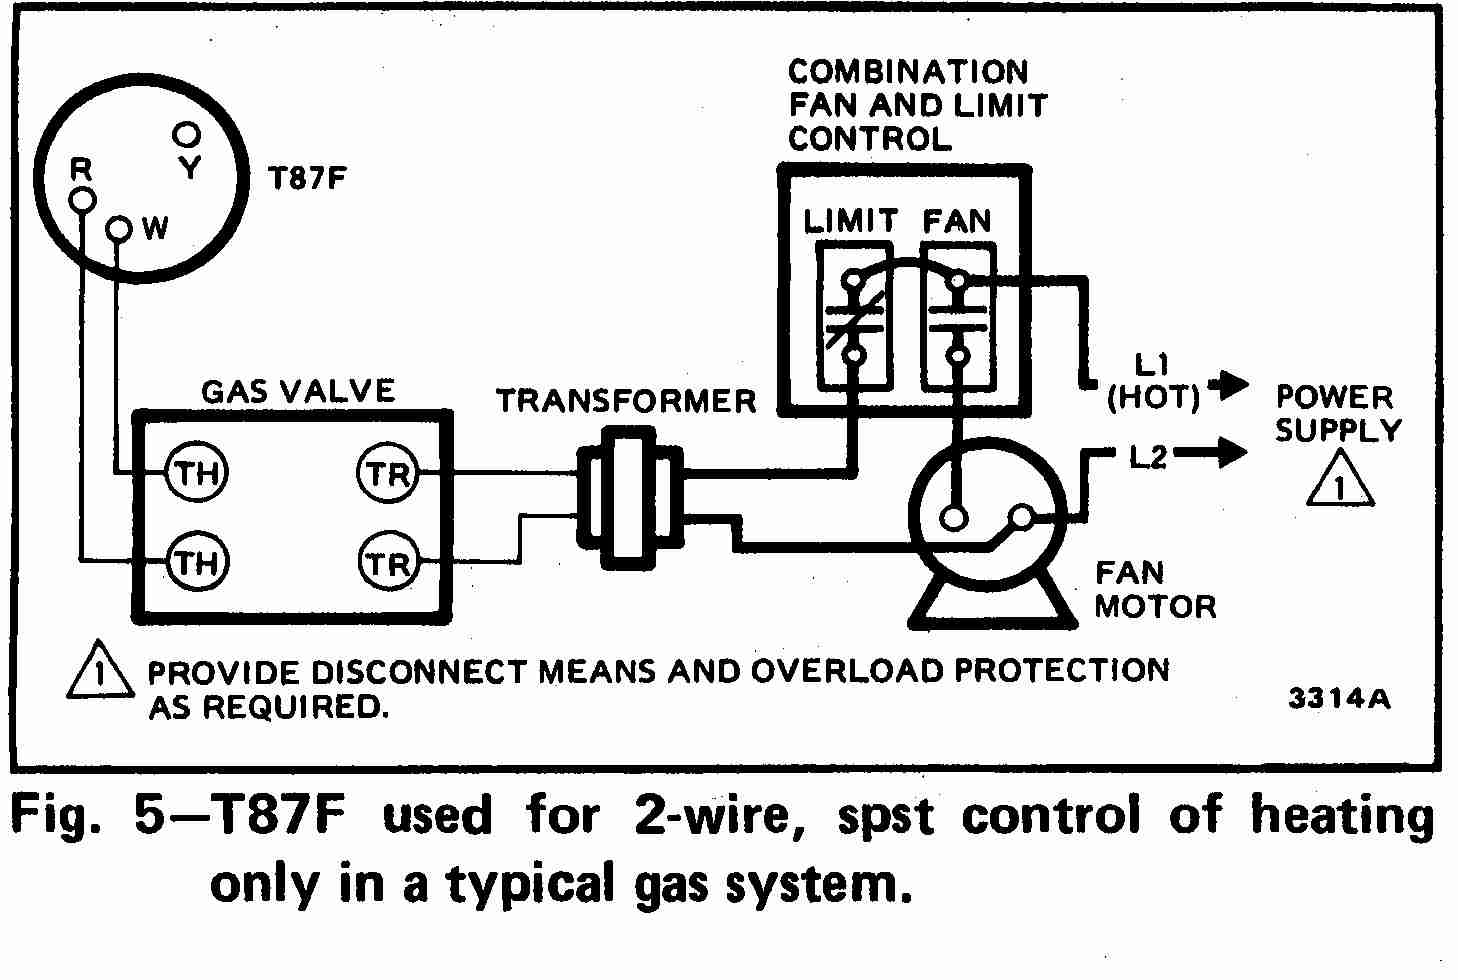 TT_T87F_0002_2Wg_DJF guide to wiring connections for room thermostats t stat wiring diagram at soozxer.org